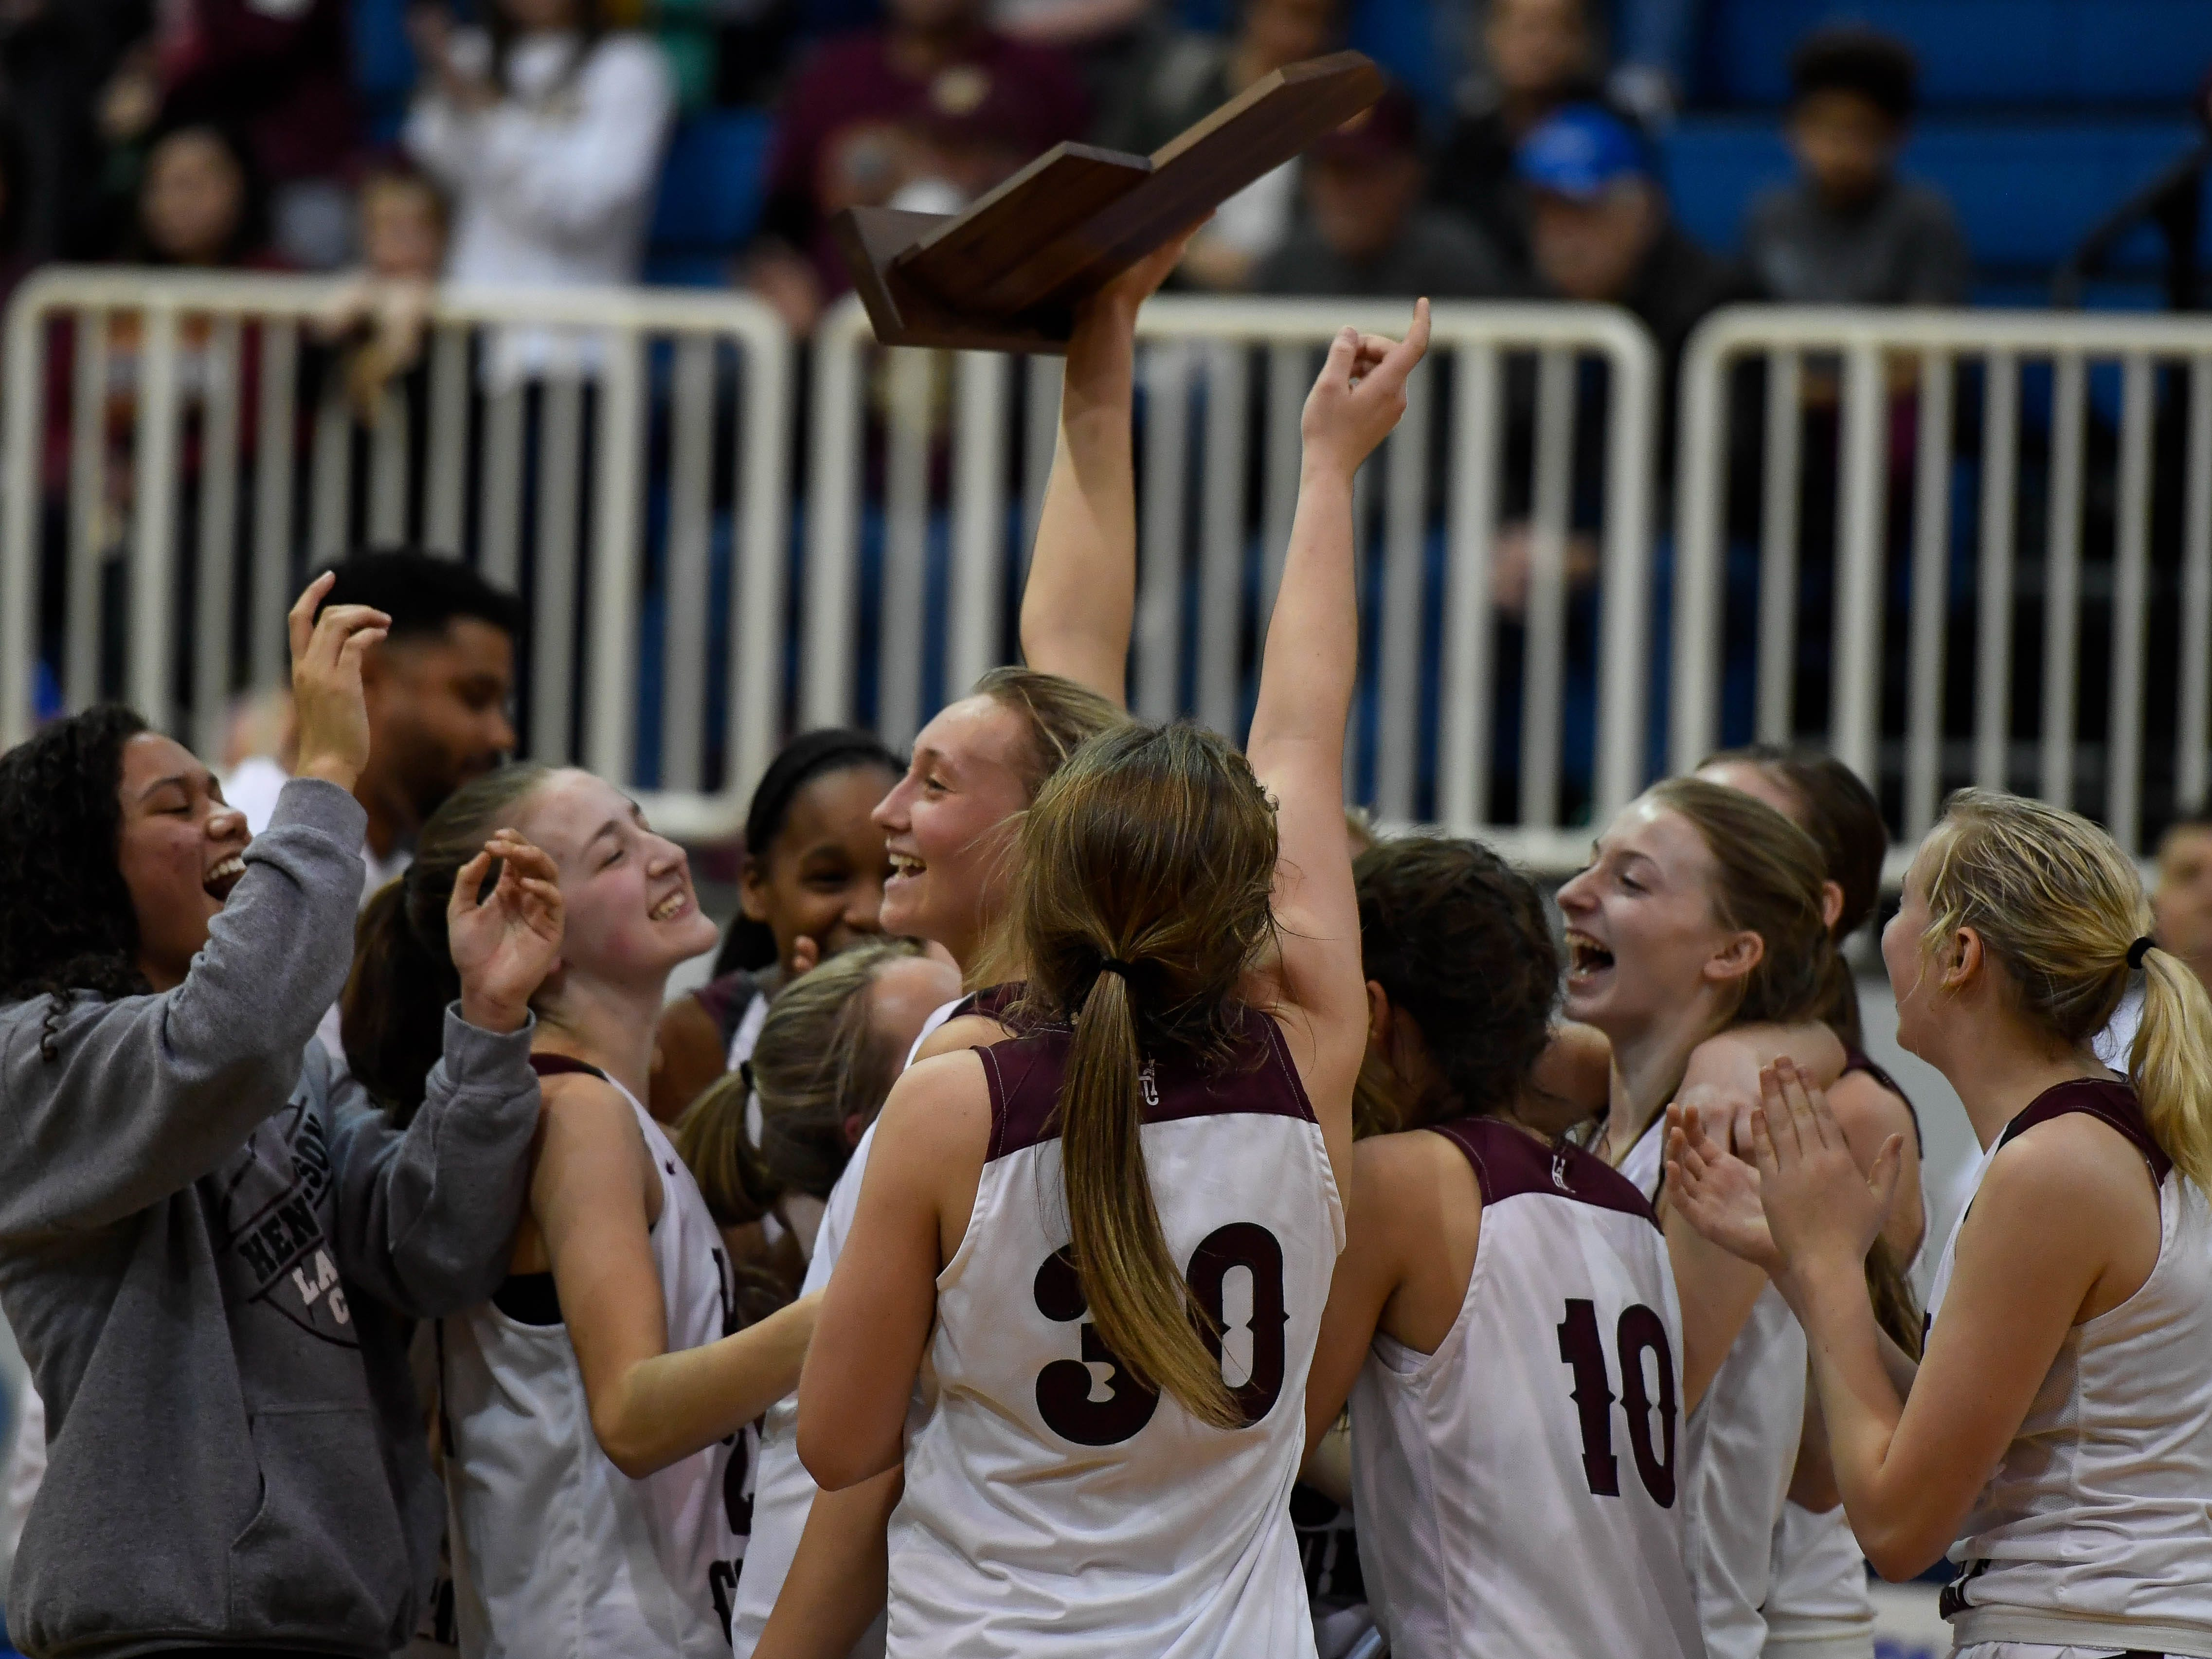 The Henderson County Colonels celebrate with the Girls Second Region Championship trophy after defeating the Webster County Lady Trojans at the Rocket Arena in Marion Tuesday, March 5, 2019.